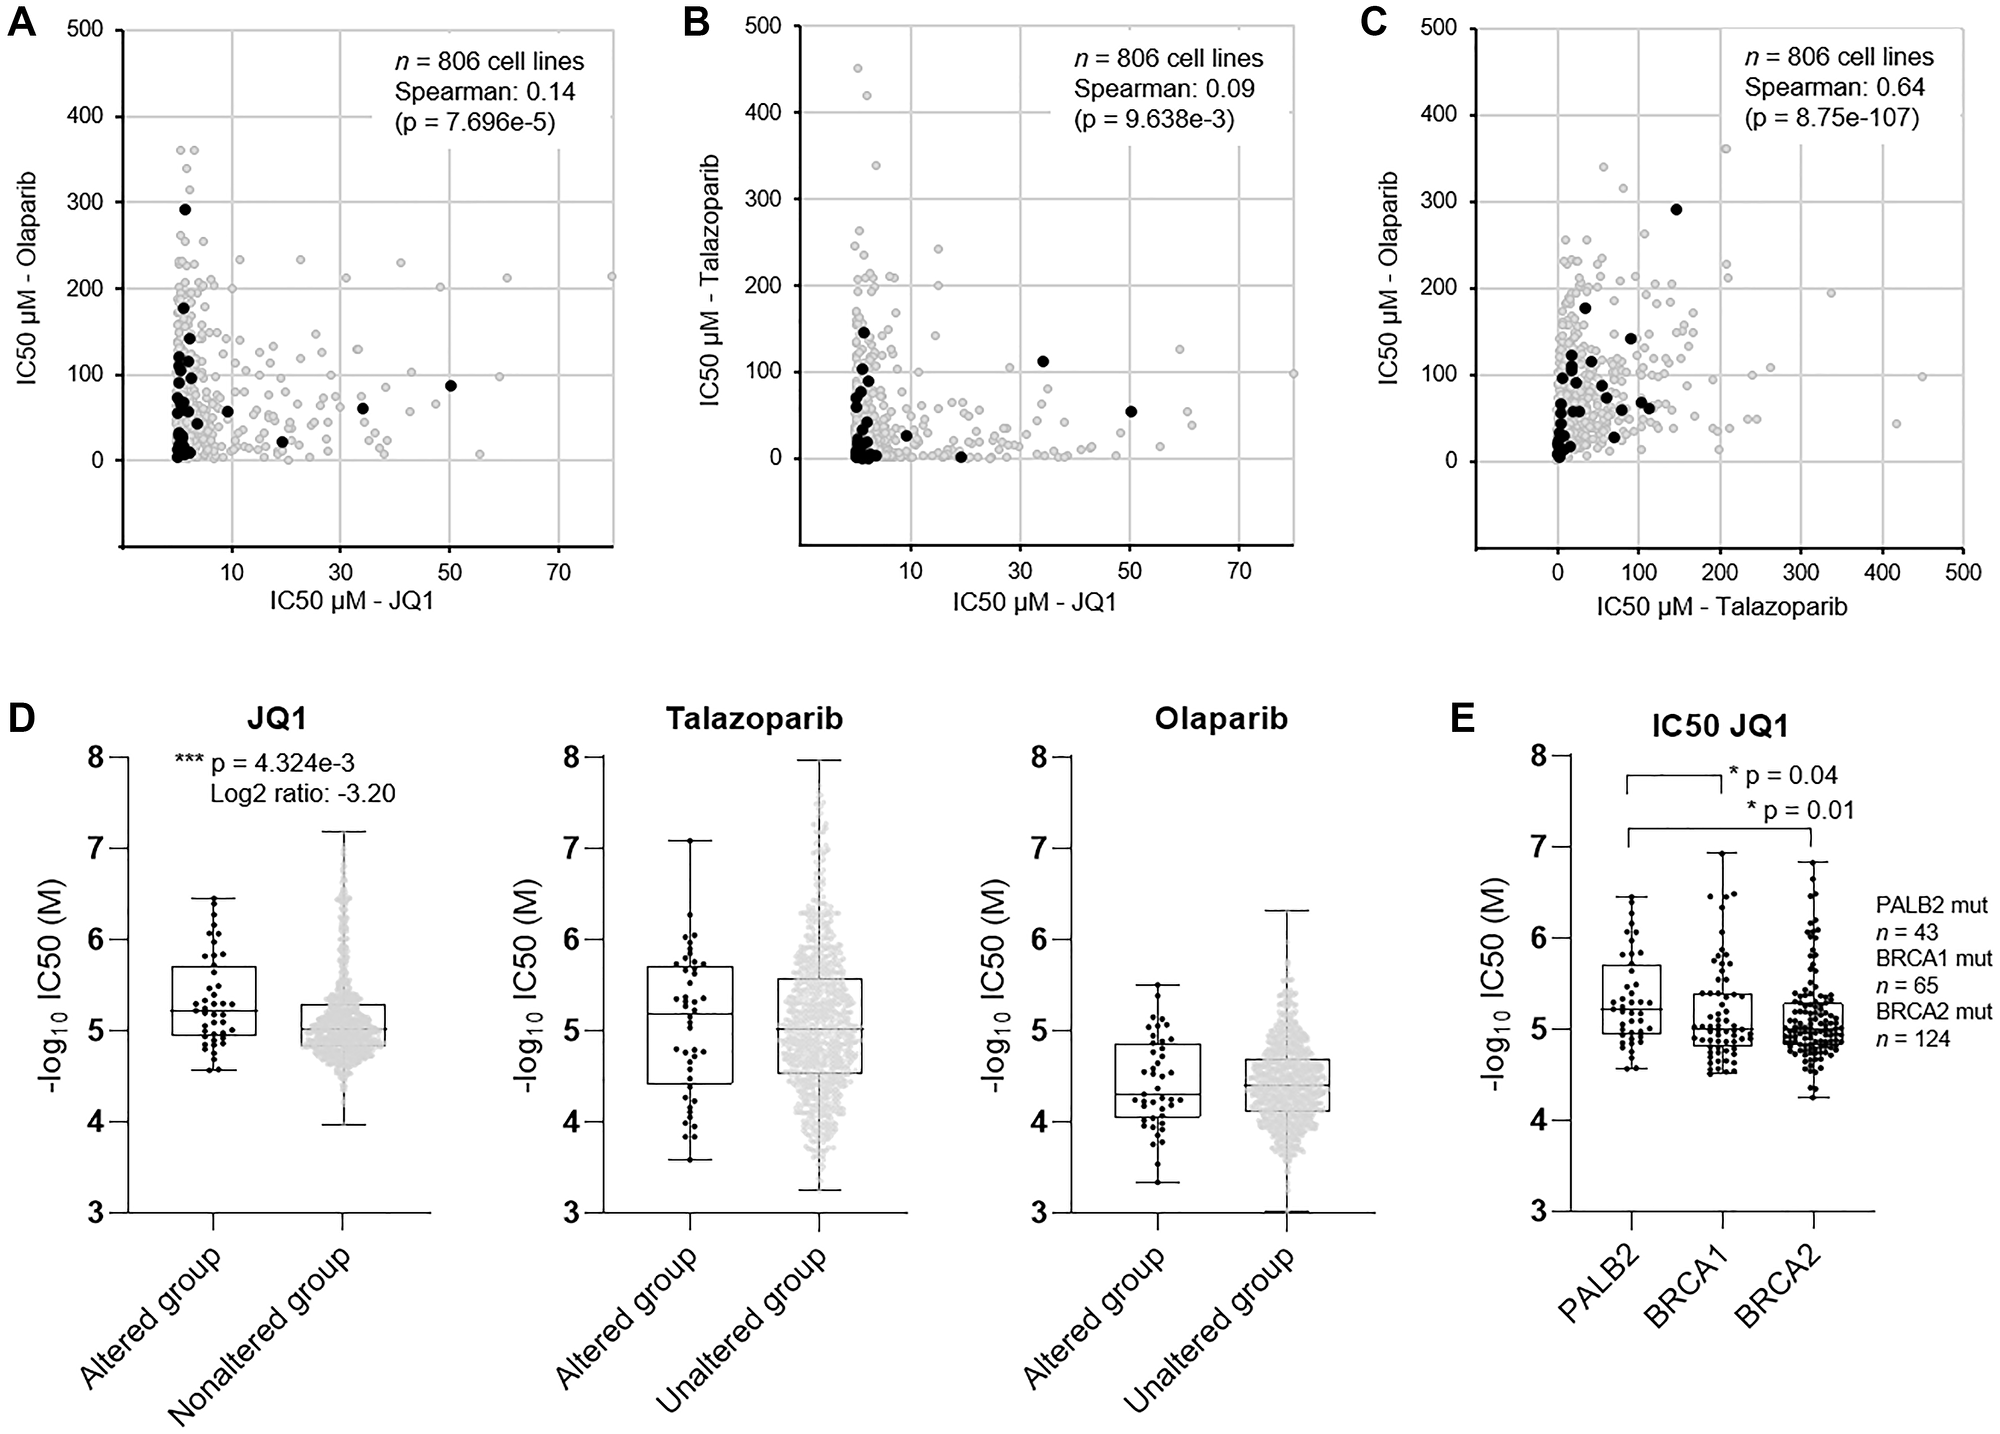 Evaluation of efficacy of PARPi and BETi in established human cancer cell lines.